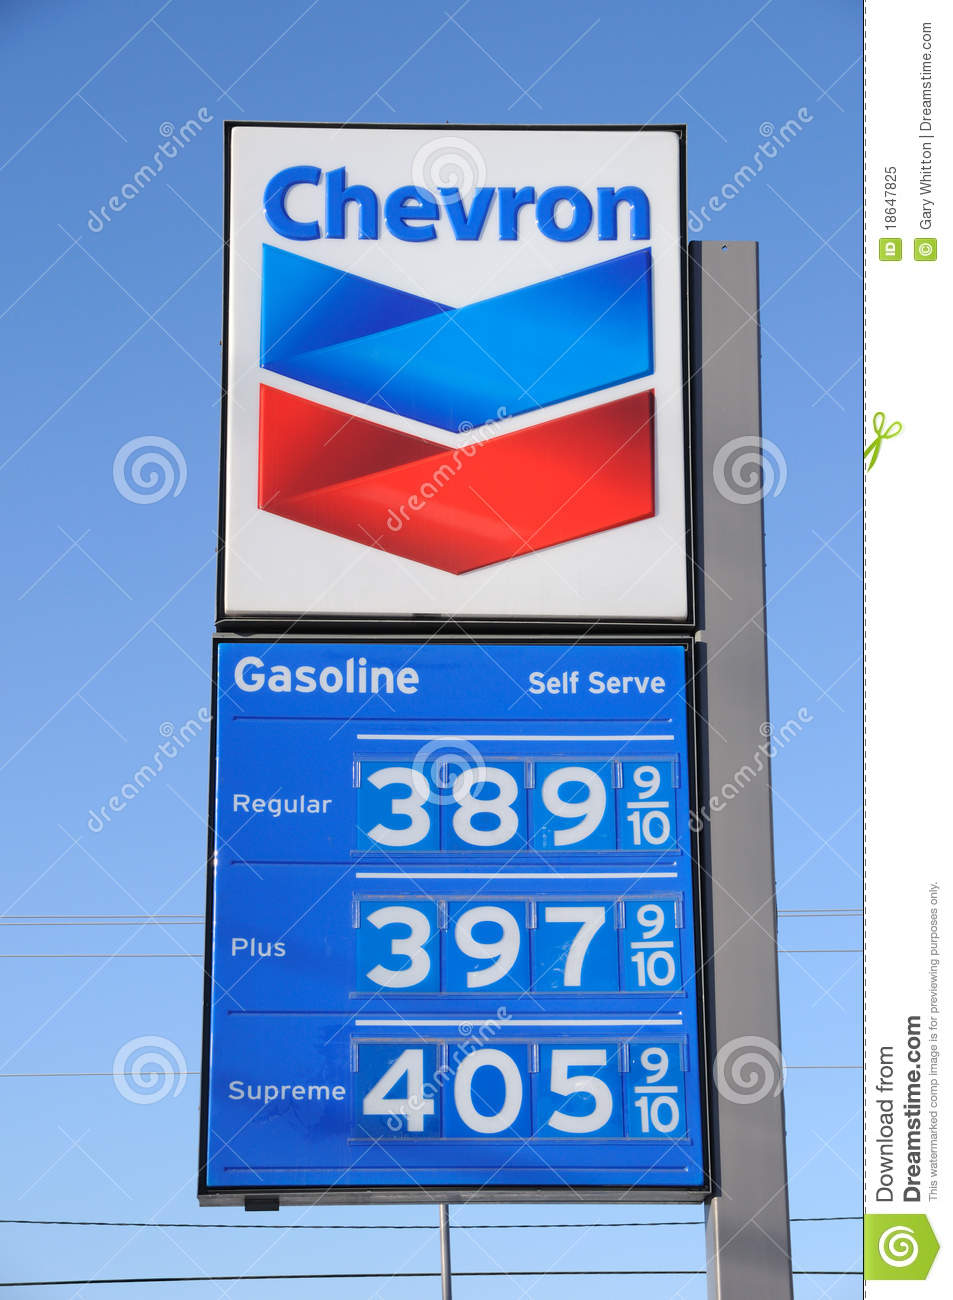 the rise of gas prices Gas prices are on the rise once again, after declining for nearly two weeks, and could jump by as much as 25 cents a gallon this spring as travel picks up, industry analysts said monday.